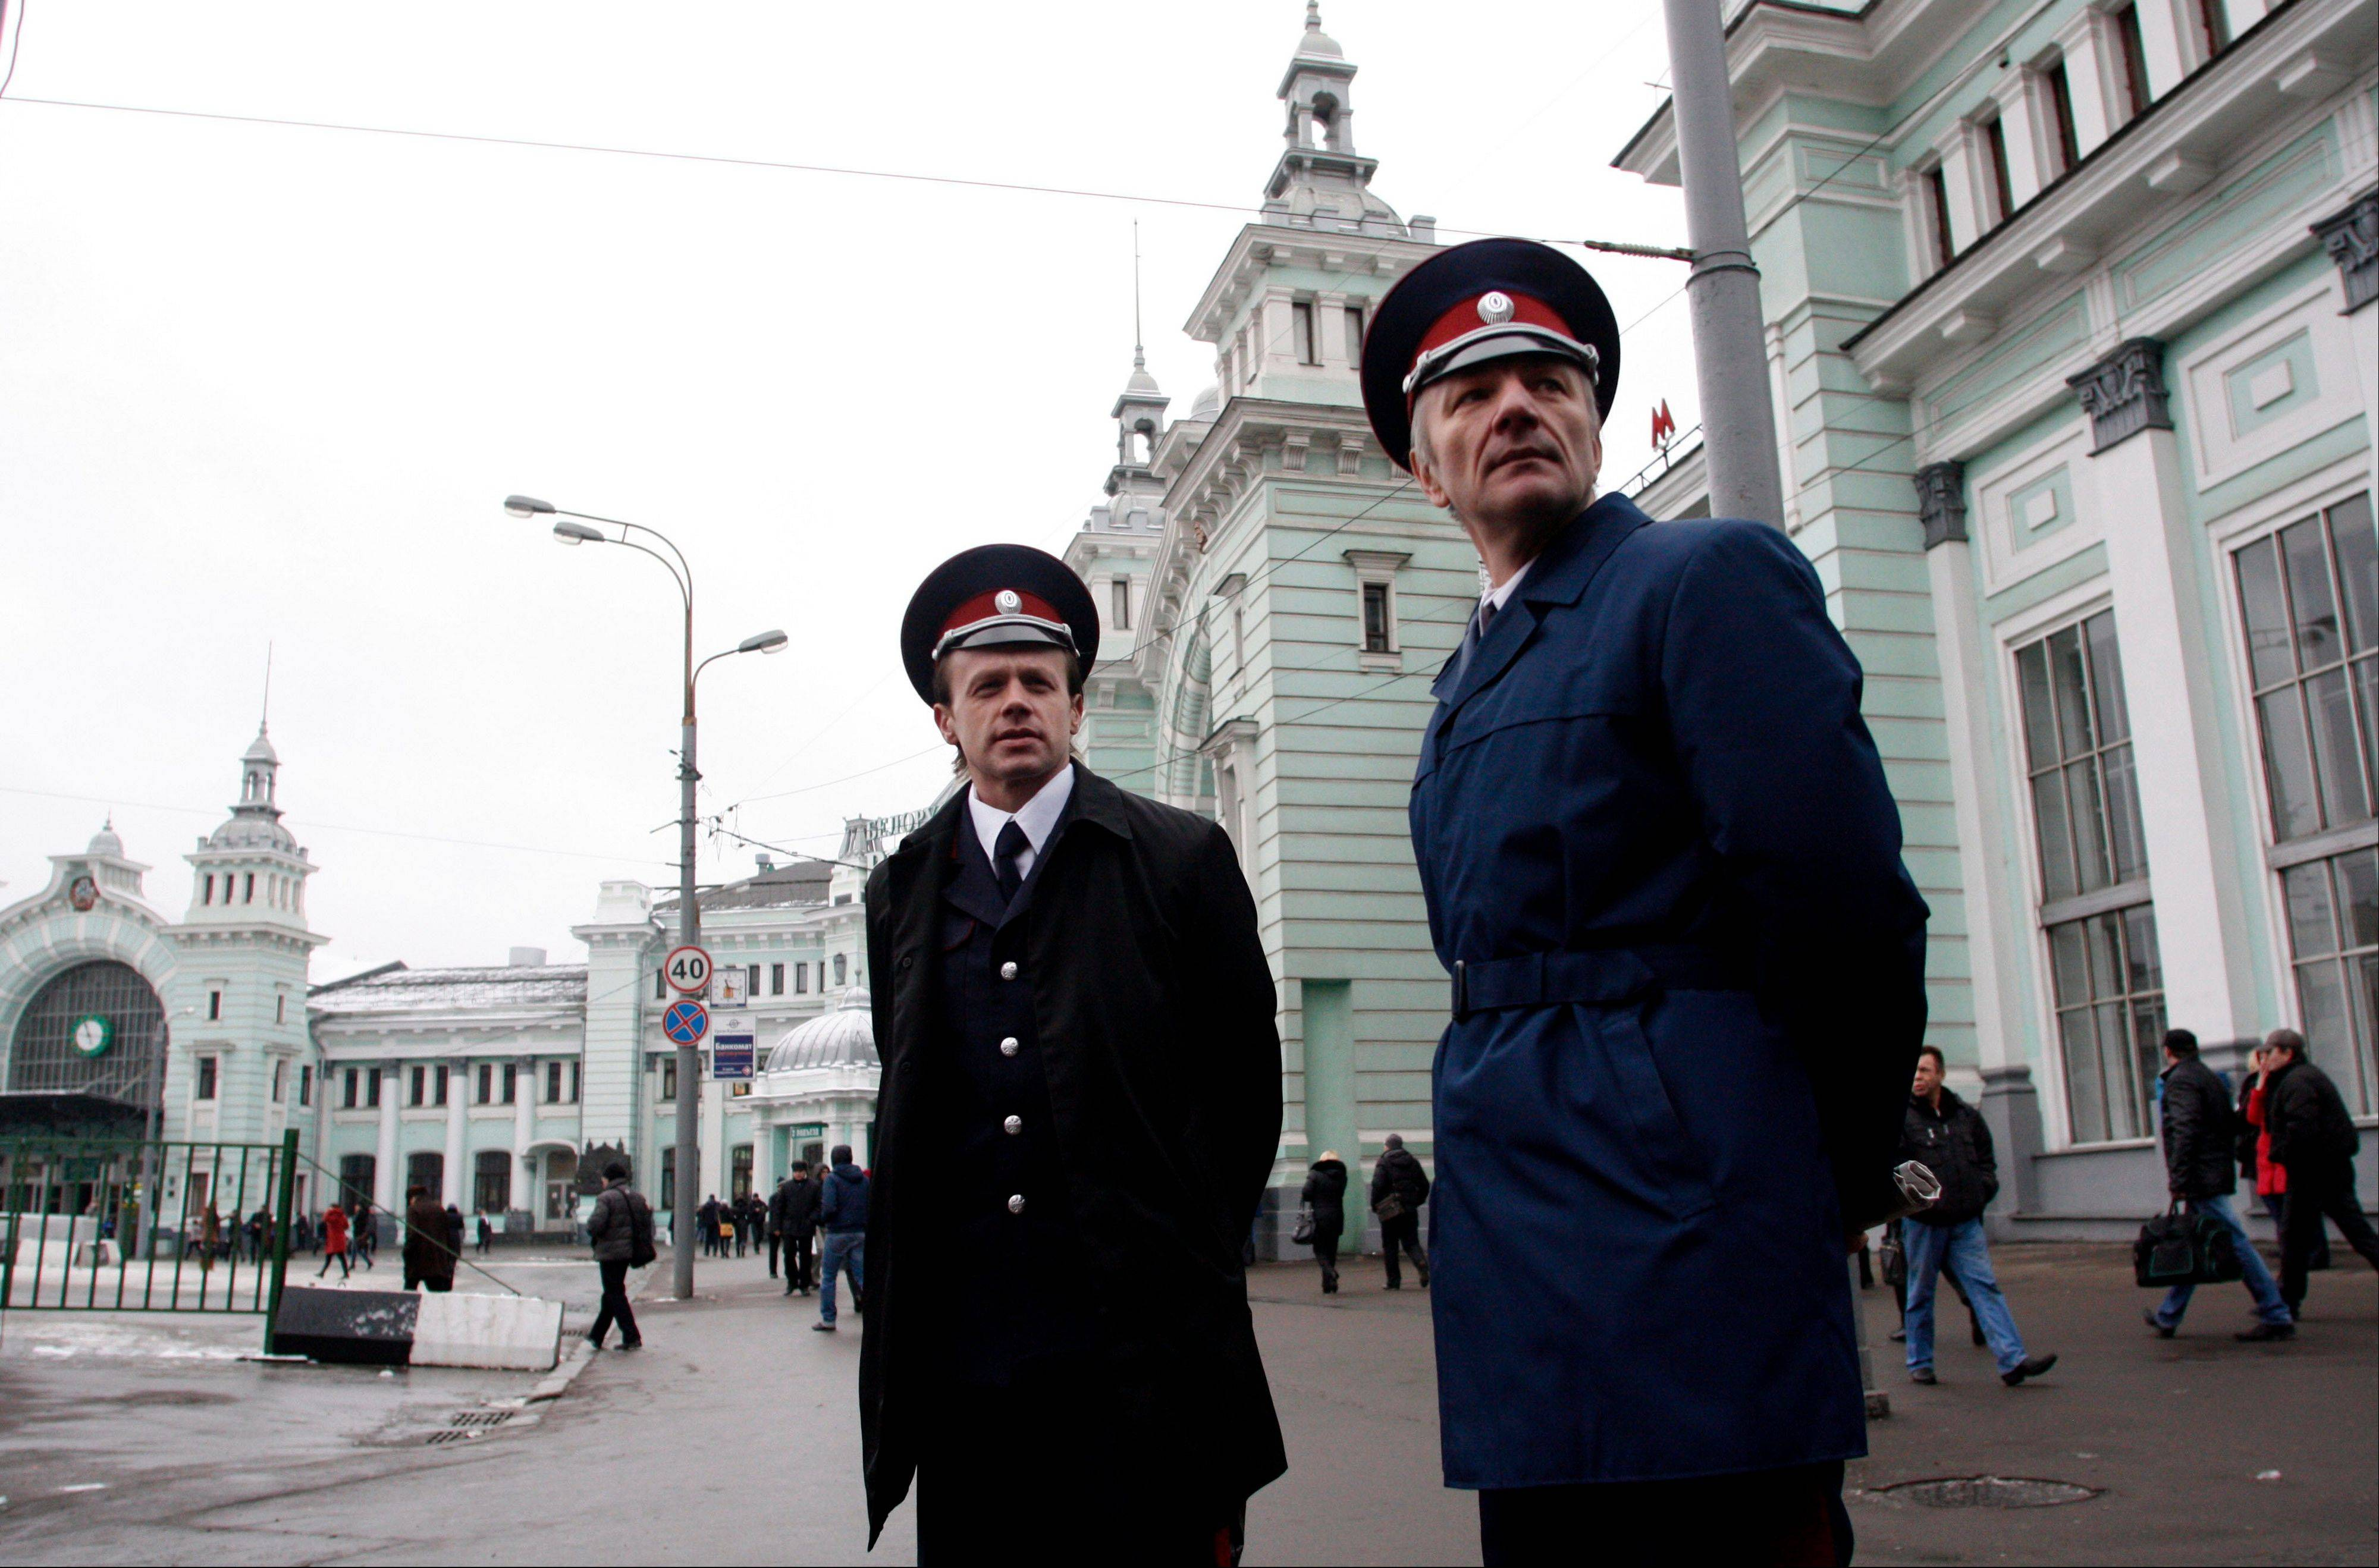 Two Russian Cossacks watch pedestrians passing by as they patrol Belorussky railway station in downtown Moscow, Russia, Tuesday, Nov. 27, 2012. Renowned for their sword-fighting prowess and anti-Semitism in czarist Russia, the Cossacks are taking on new foes: beggars, drunks, unlicensed traders and improperly parked cars.